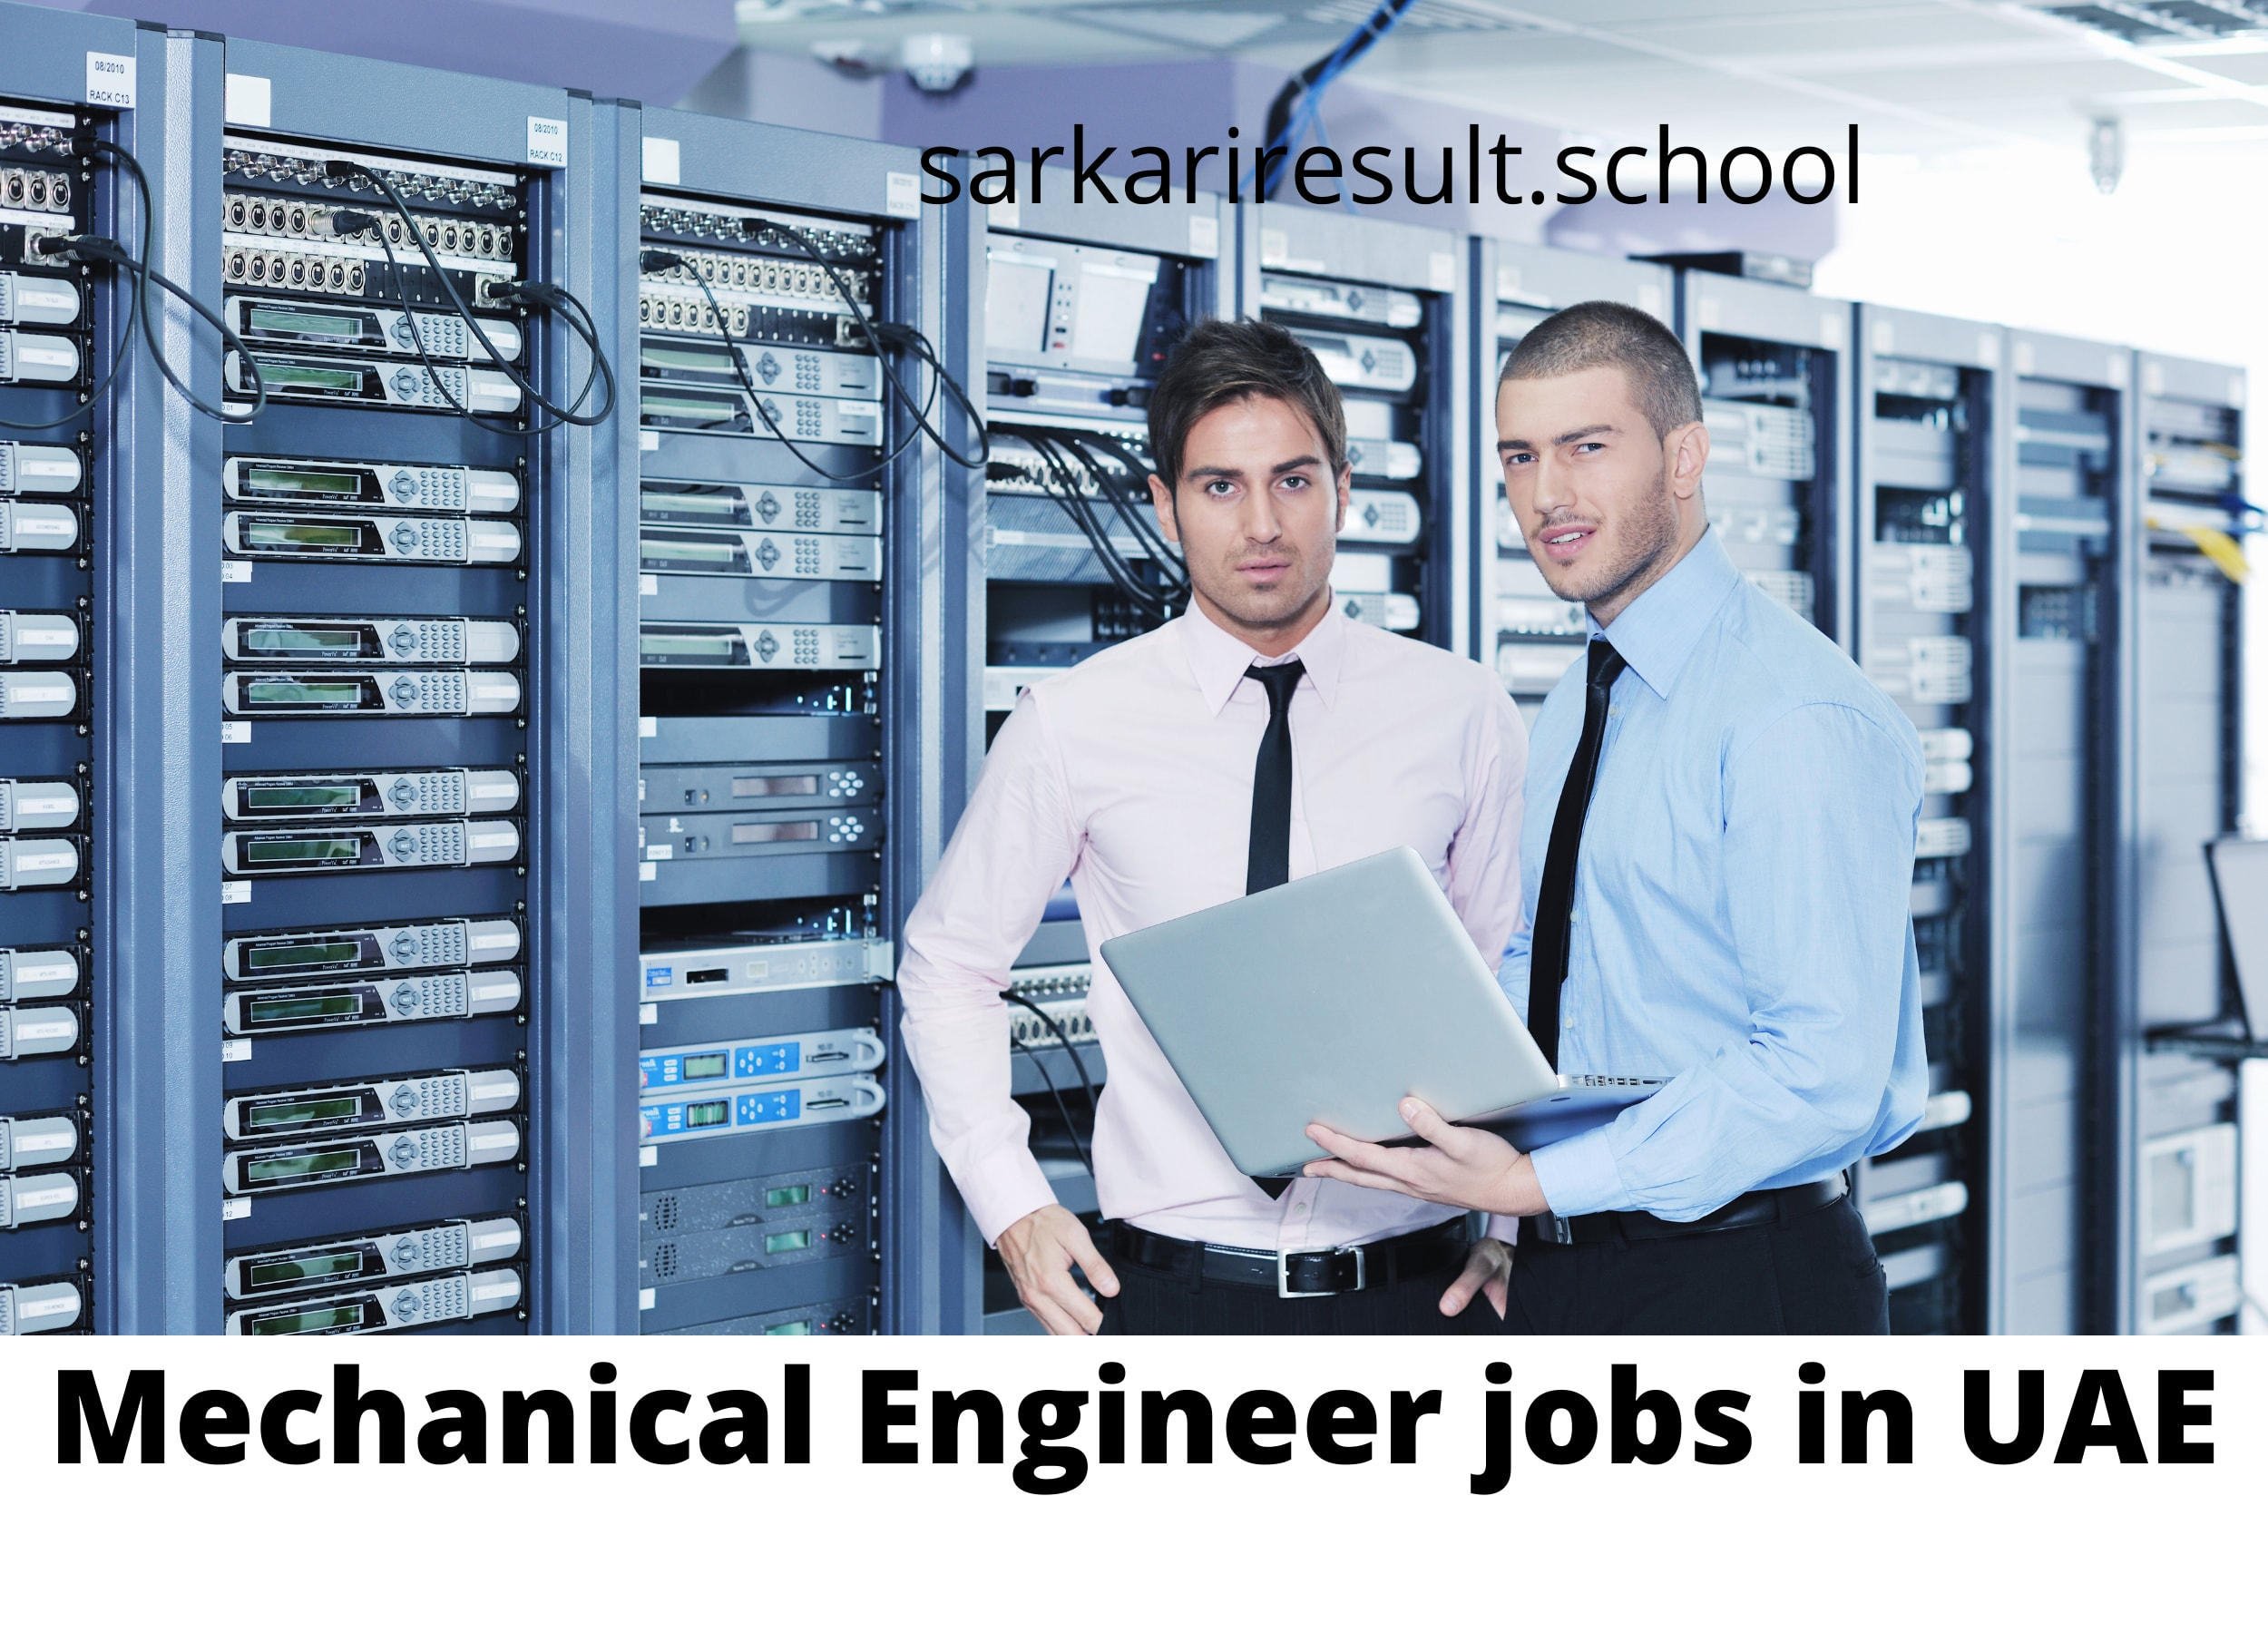 Mechanical Engineer Jobs in UAE